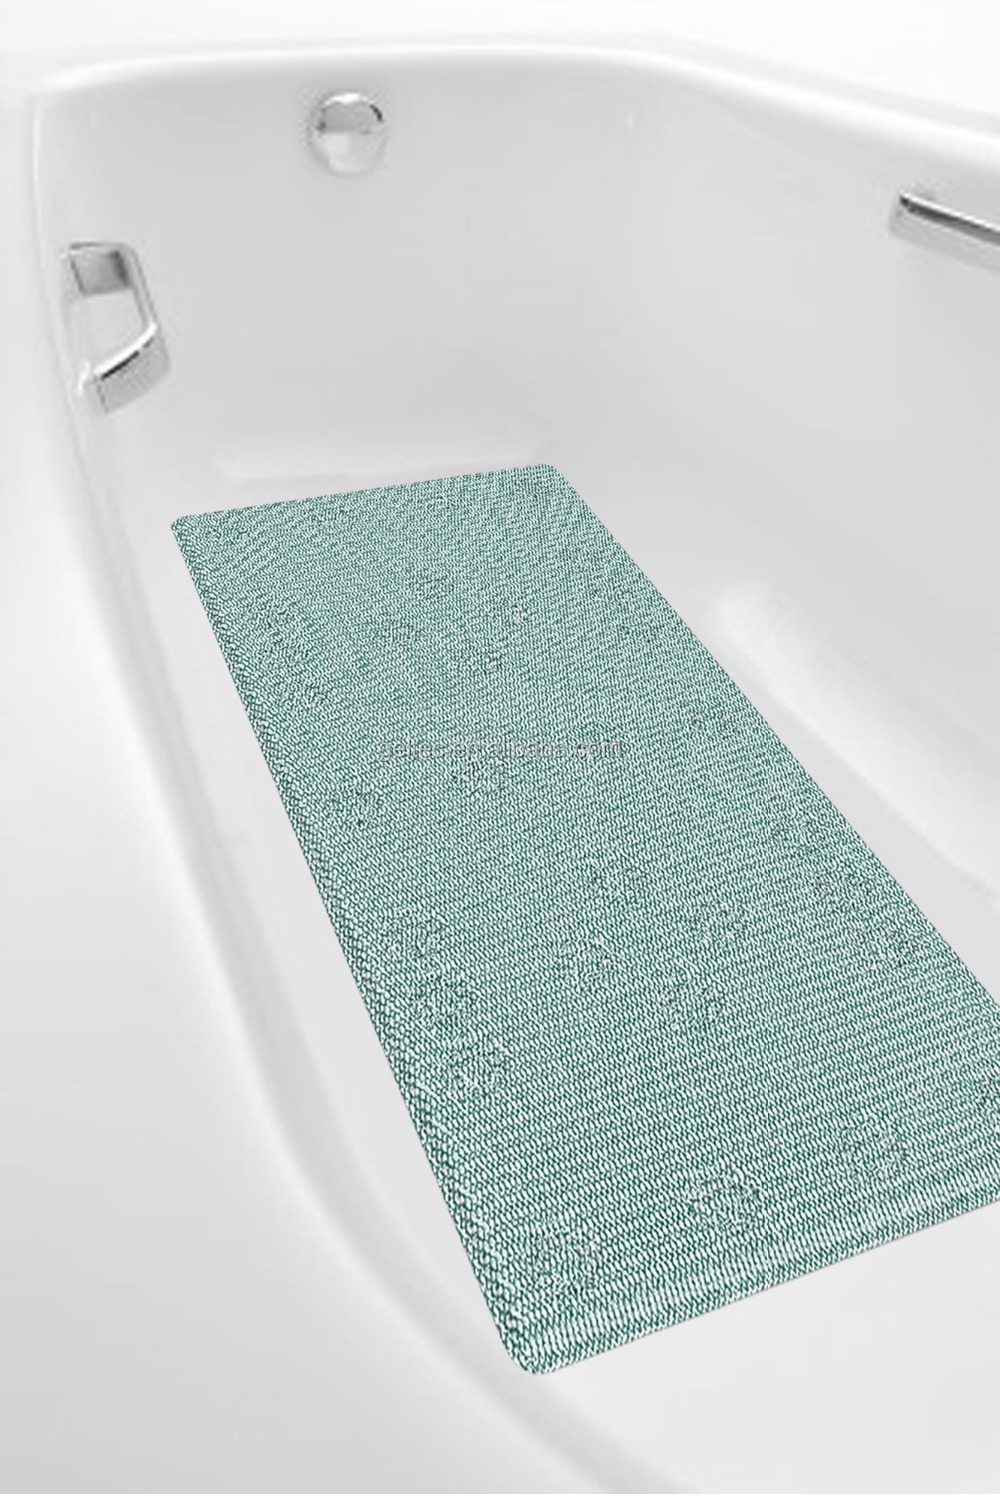 Bathroom Bathtub Mat Shower Anti Slip Wet Floor